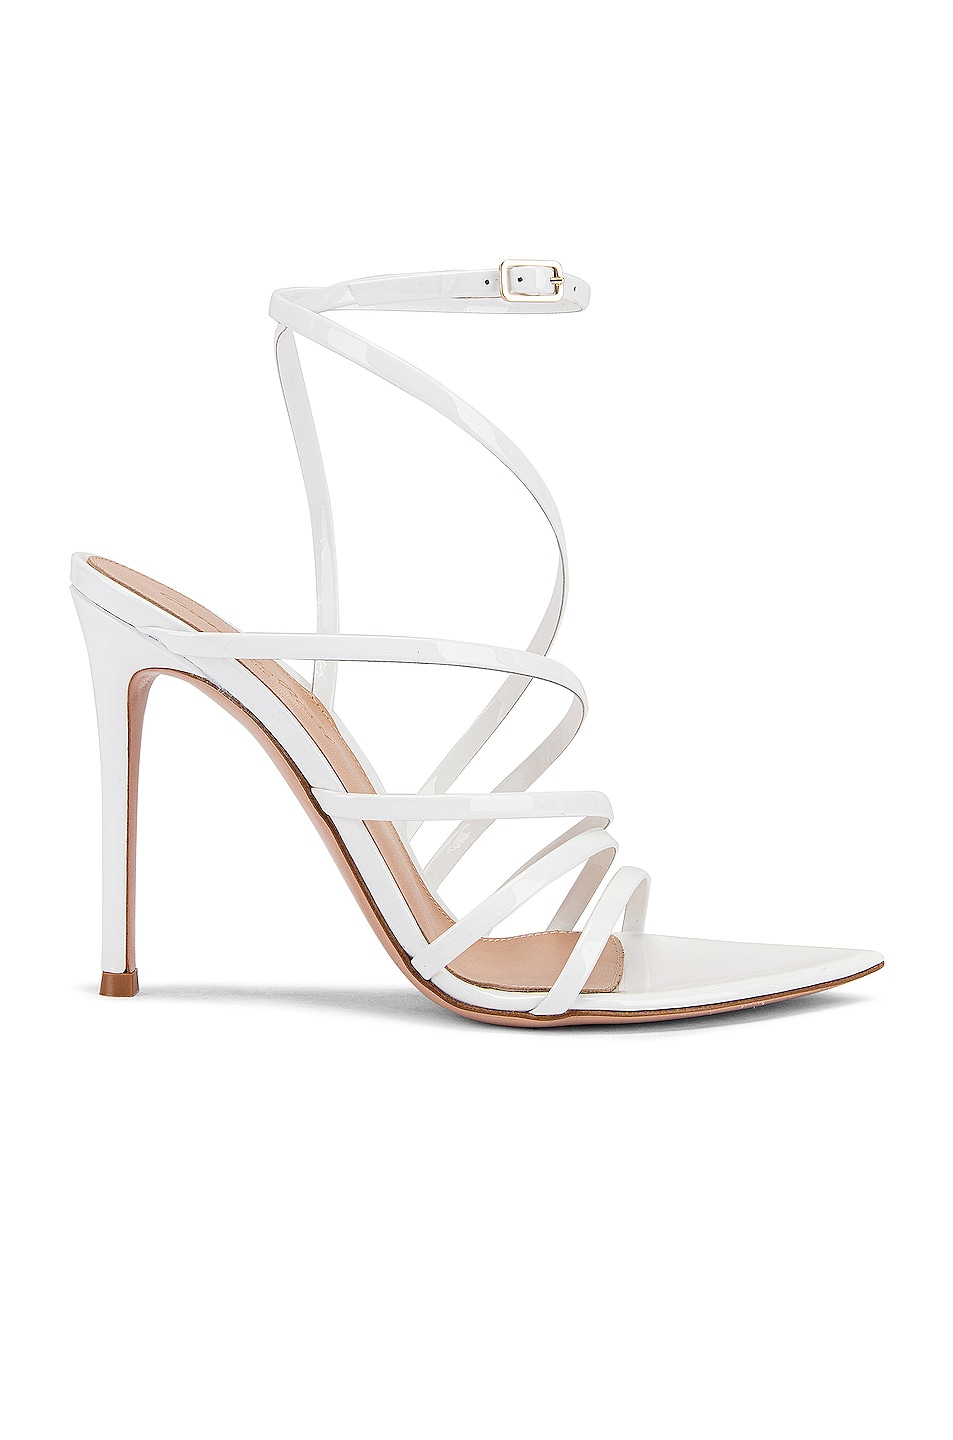 Image 1 of Gianvito Rossi Strappy Heels in White